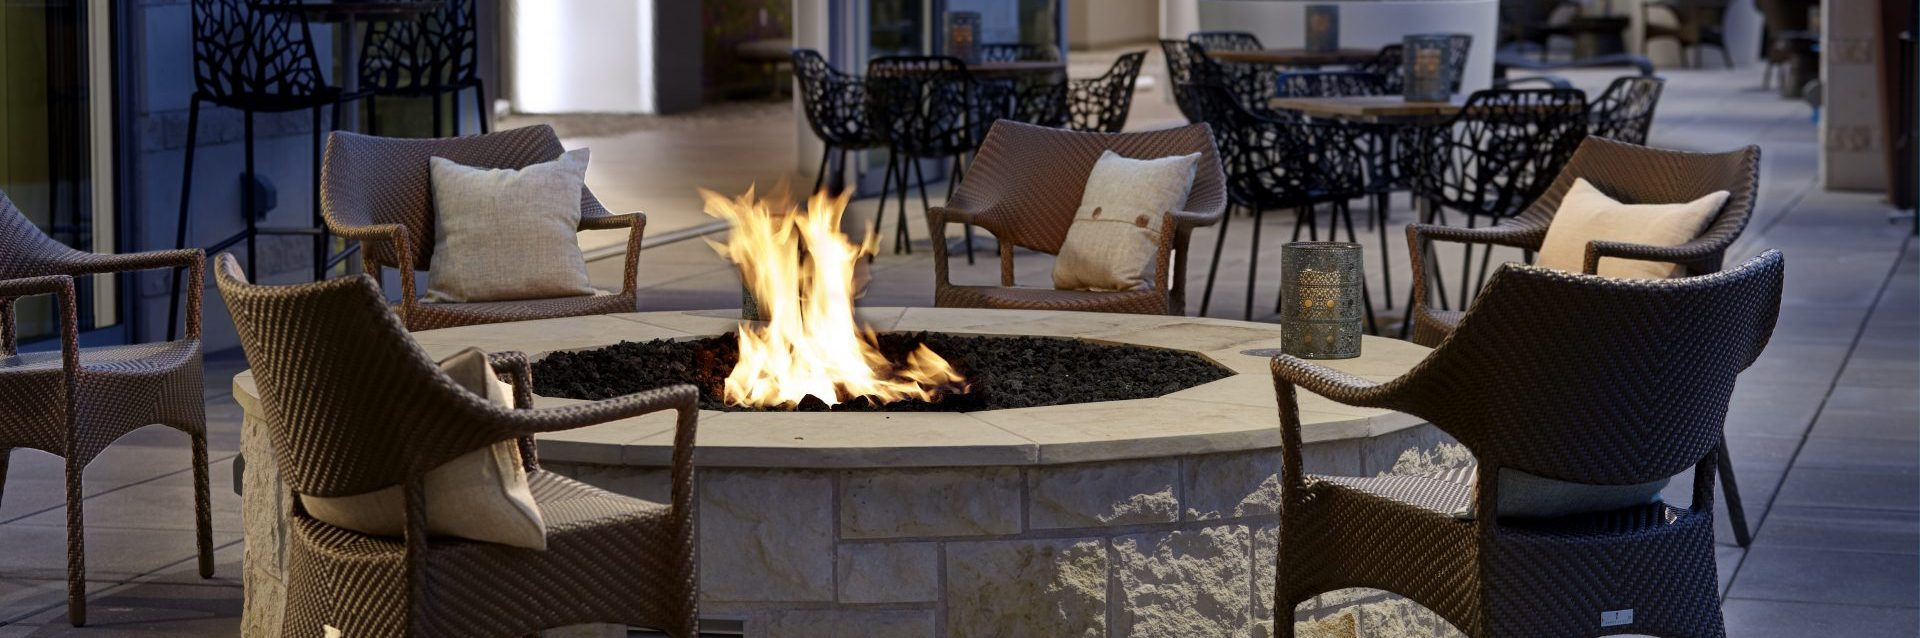 Archer Hotel Austin Second Bar + Kitchen Terrace Fire Pit